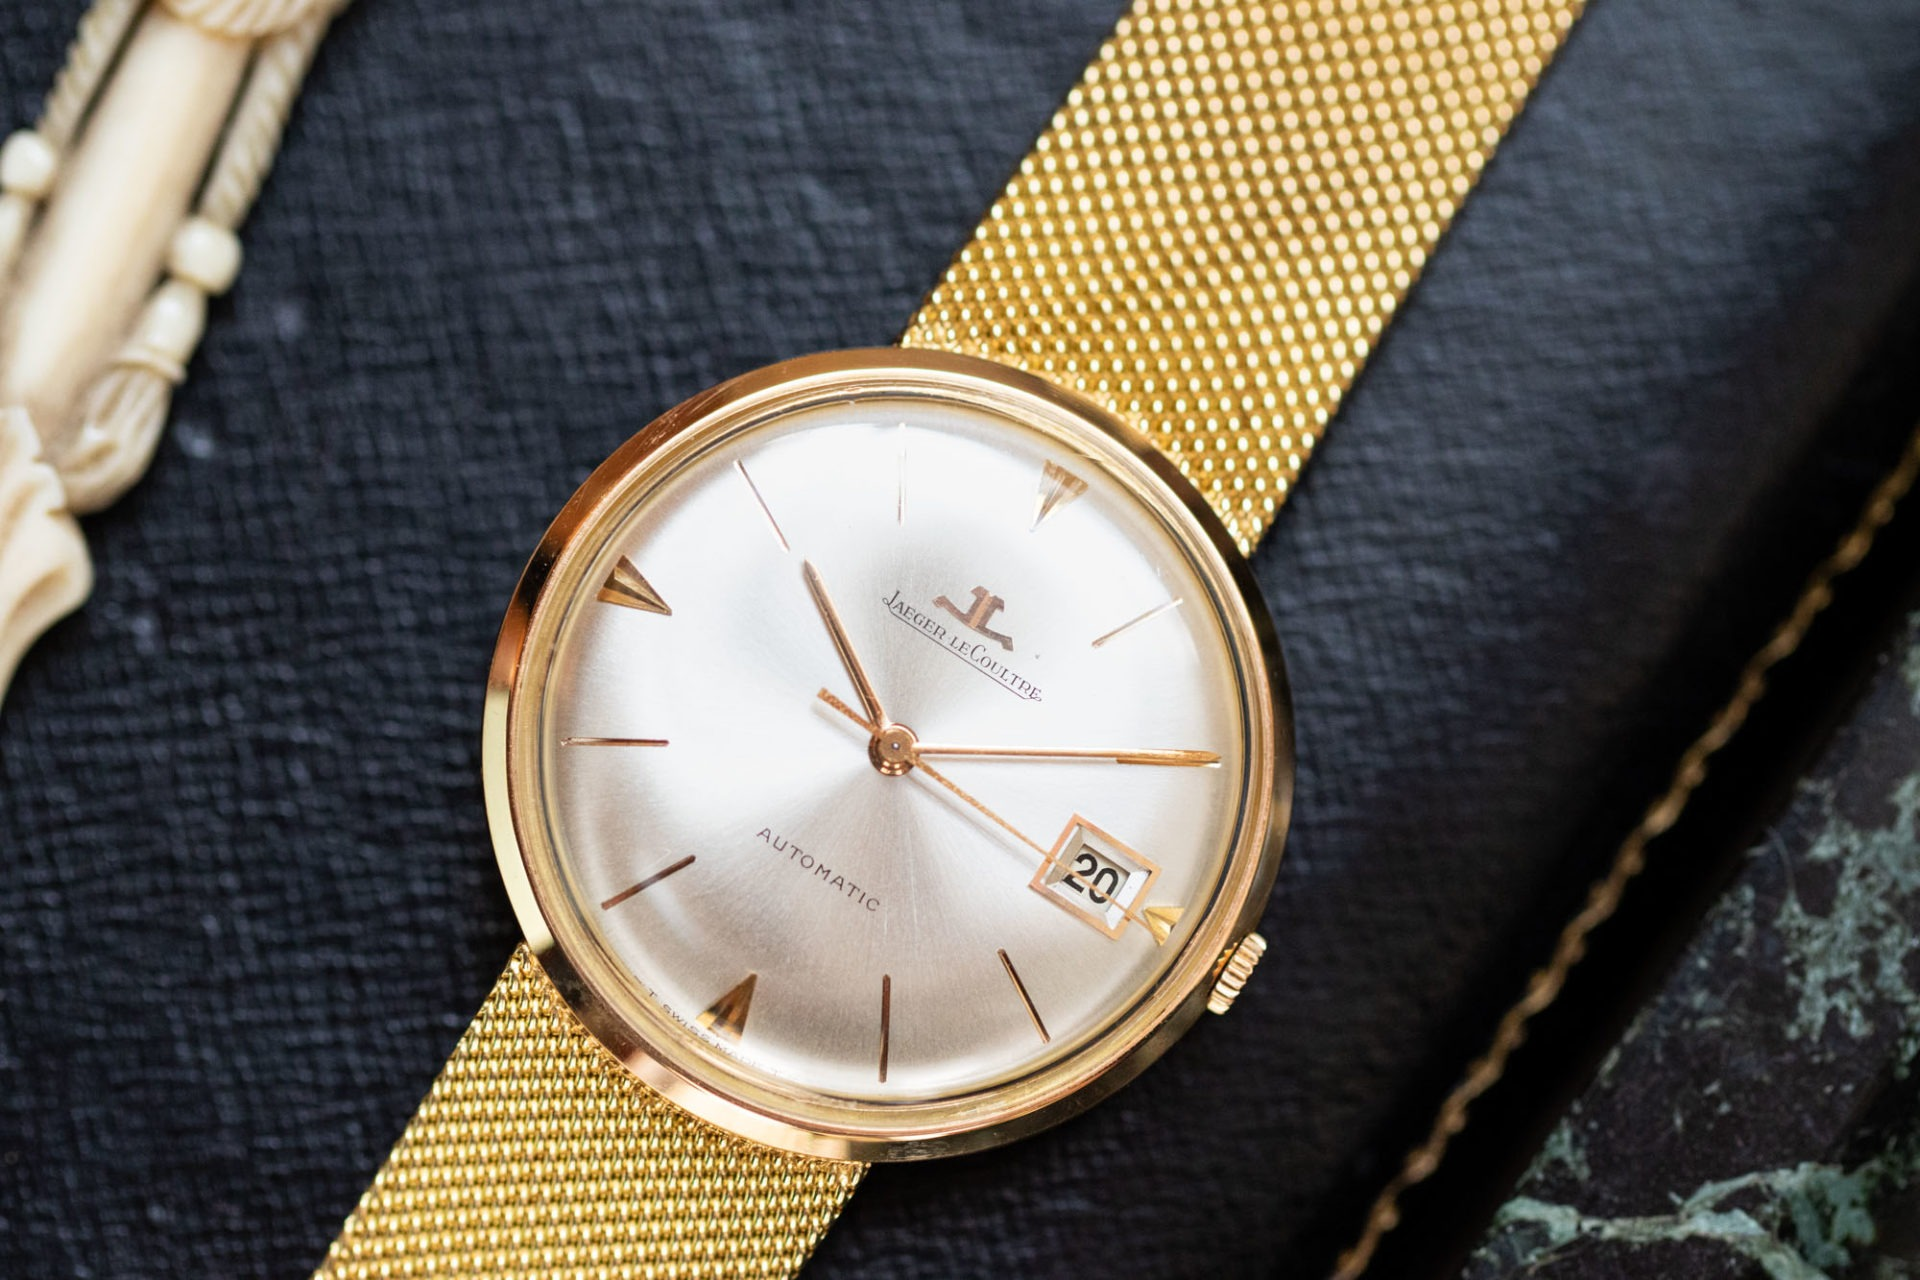 Jaeger-LeCoultre Automatic or